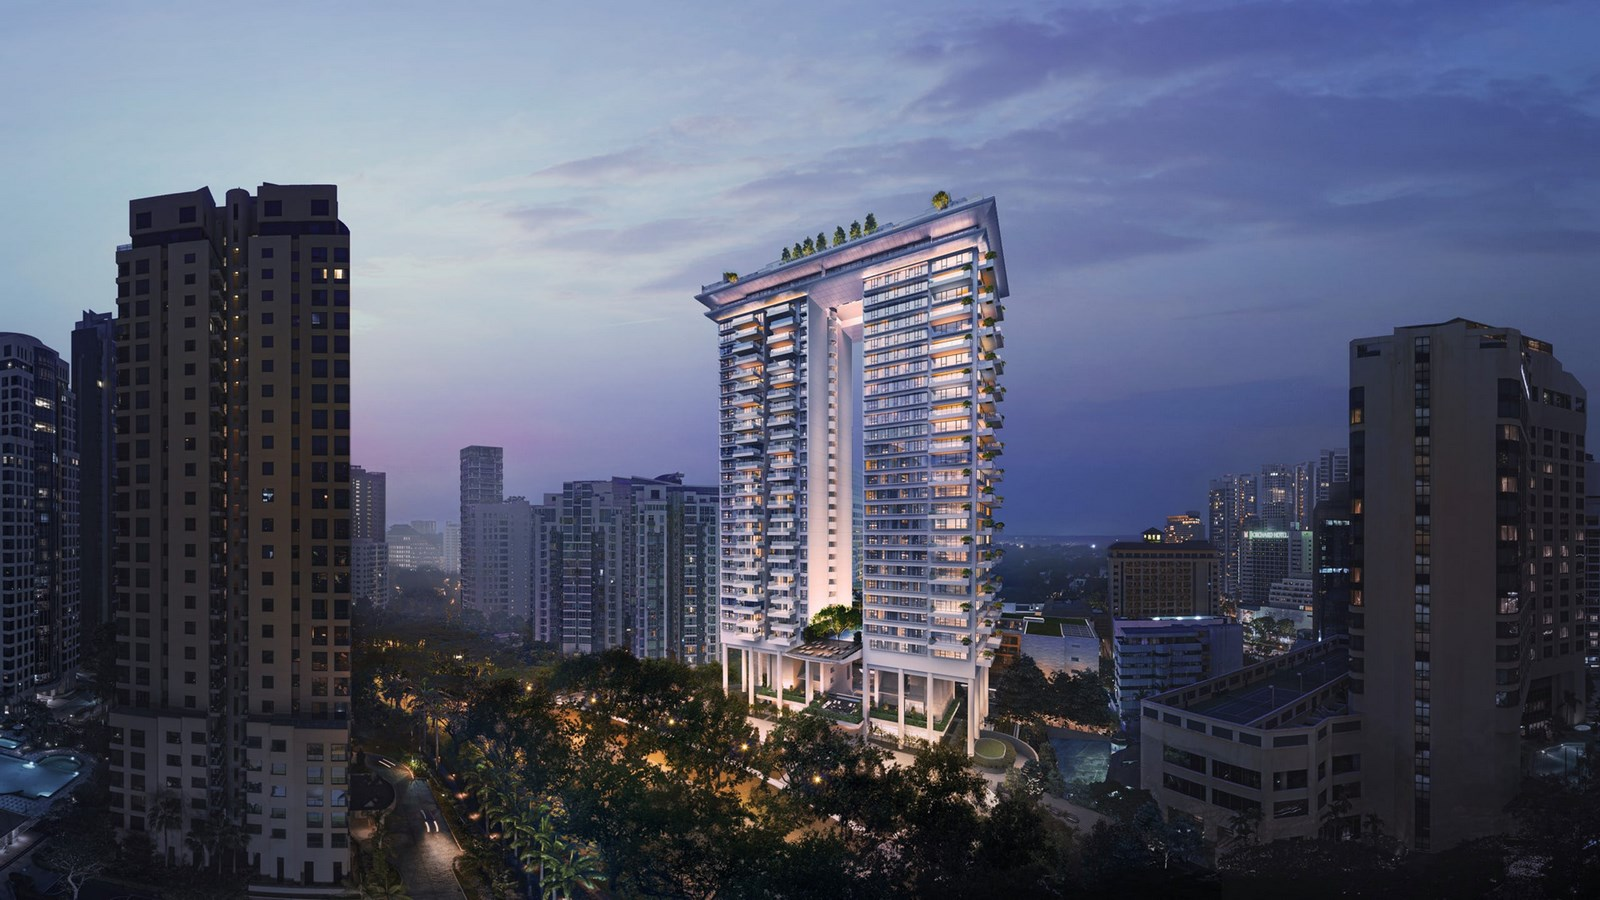 20 Iconic Projects by Moshe Safdie every Architect should know about - Orchard Boulevard Singapore,2021 - Sheet2